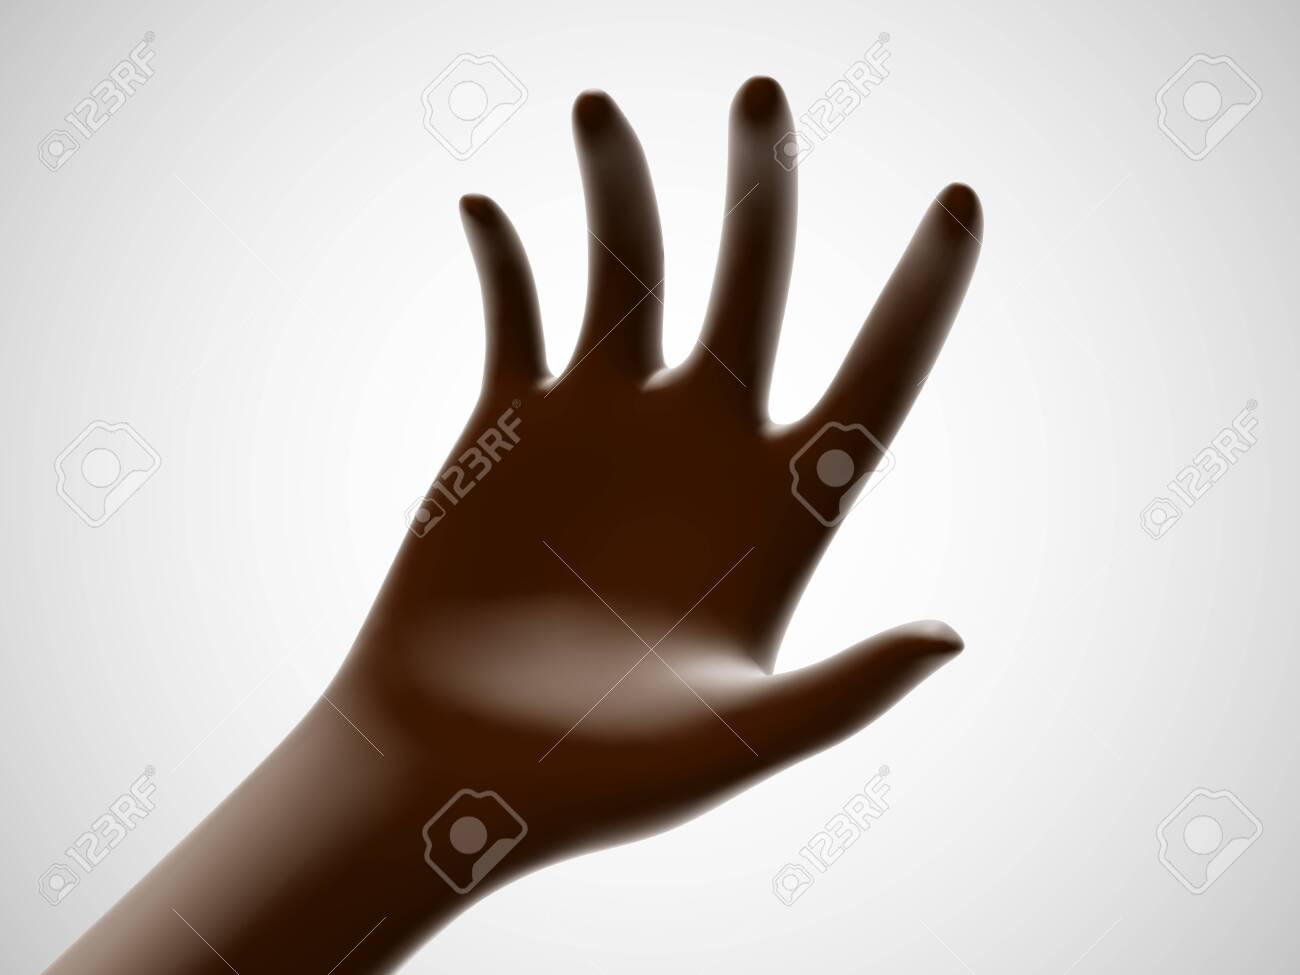 Brown open palm offering something. Concept of charity, care and online support. Vector illustration of inviting gesture. Chocolate hand giving out something on white background. - 145094302